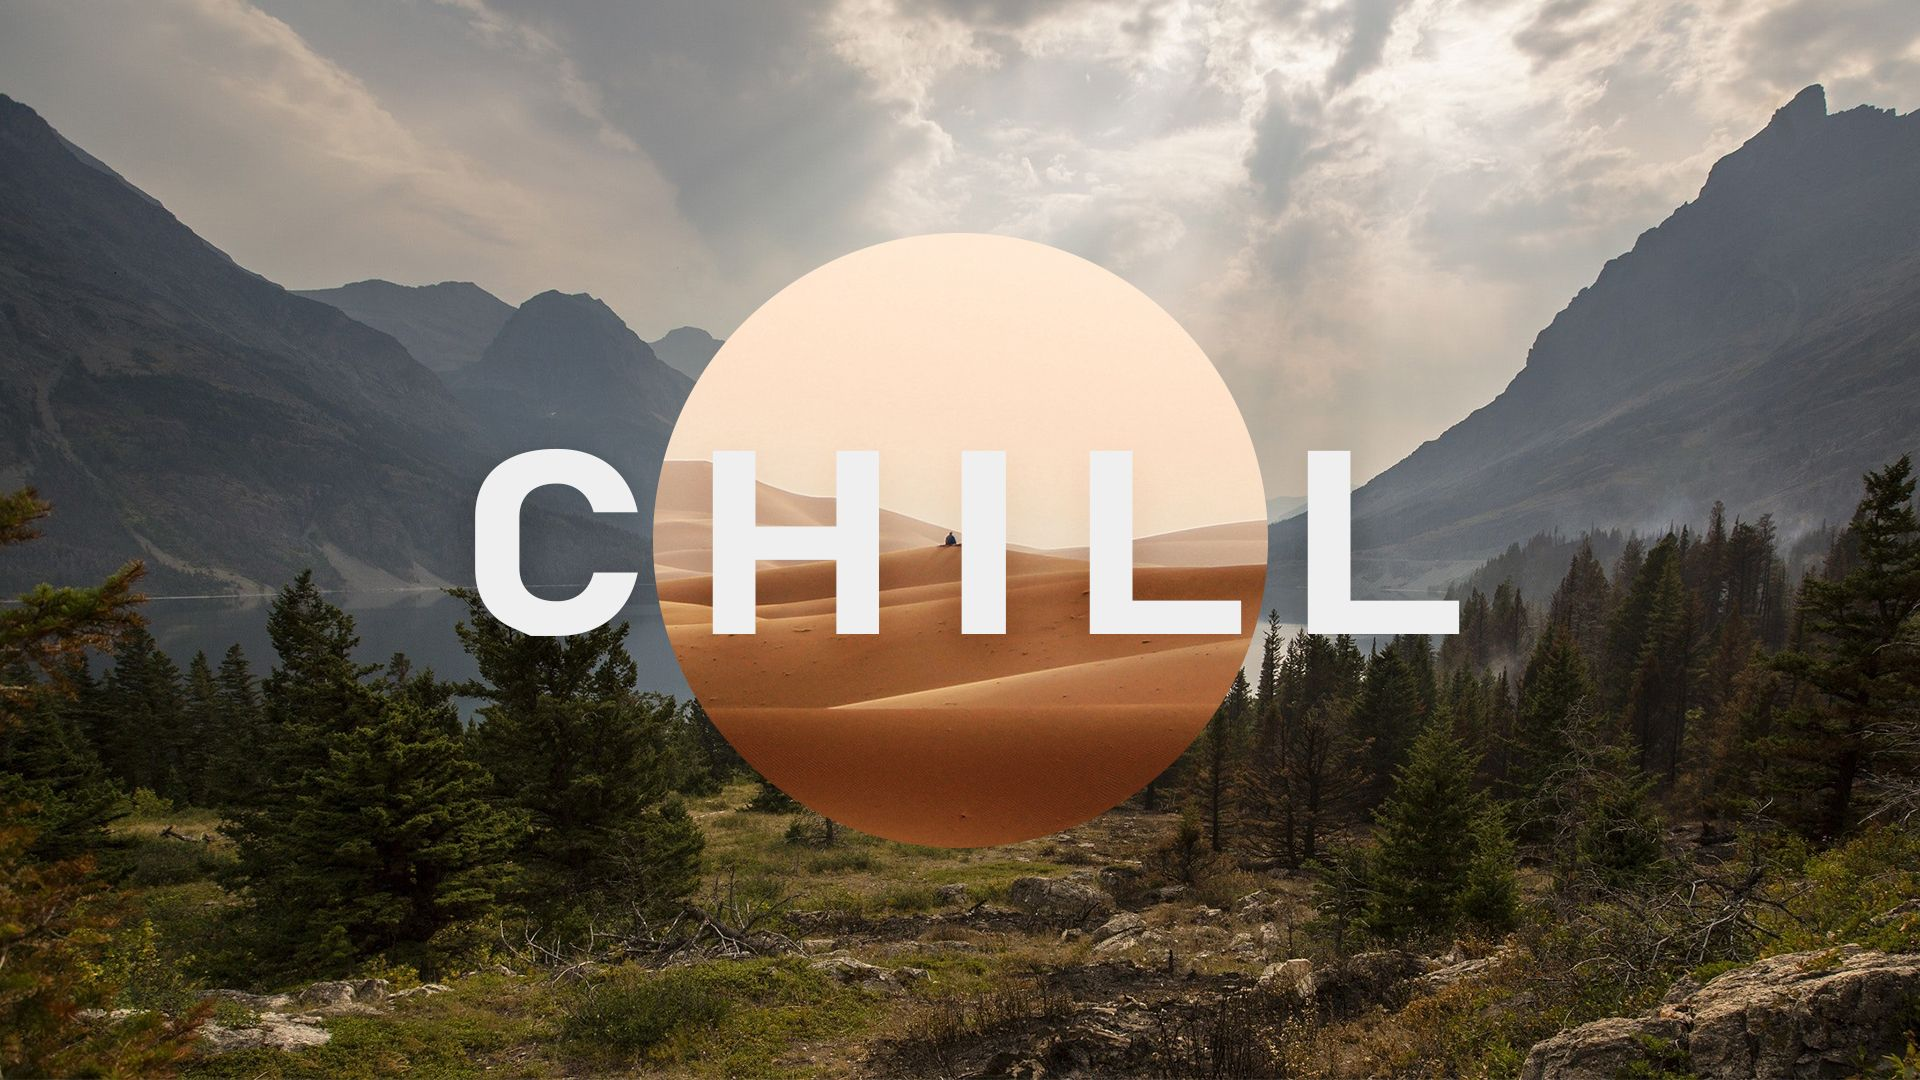 Chill Wallpapers   Top Chill Backgrounds   WallpaperAccess 1920x1080